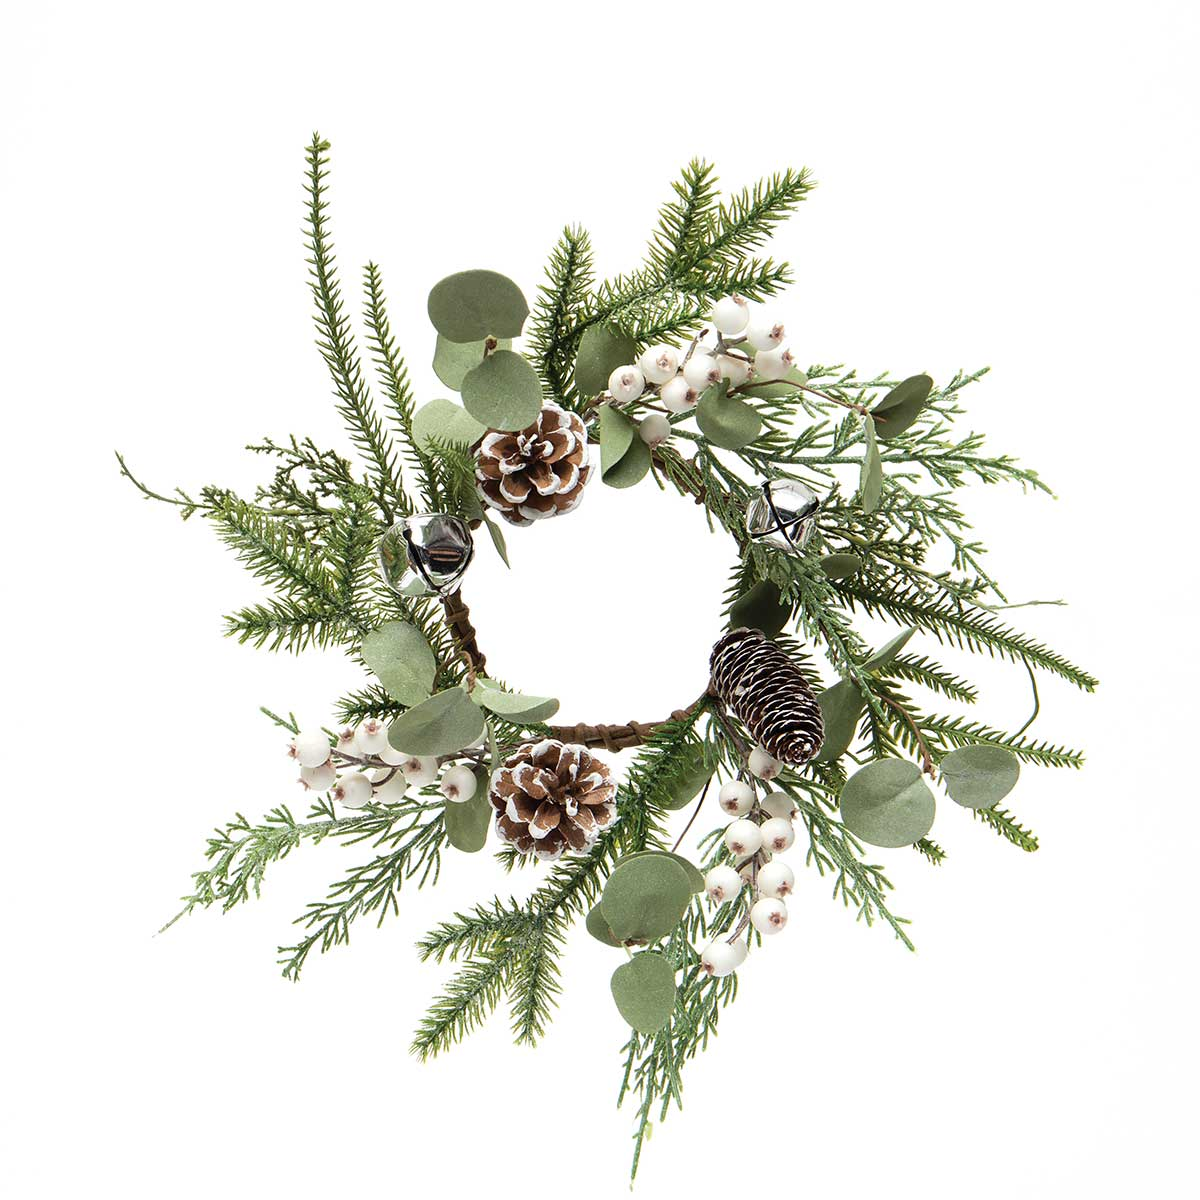 SLEIGH BELL MINI WREATH/CANDLE RING WITH EUCALYPTUS, PINE